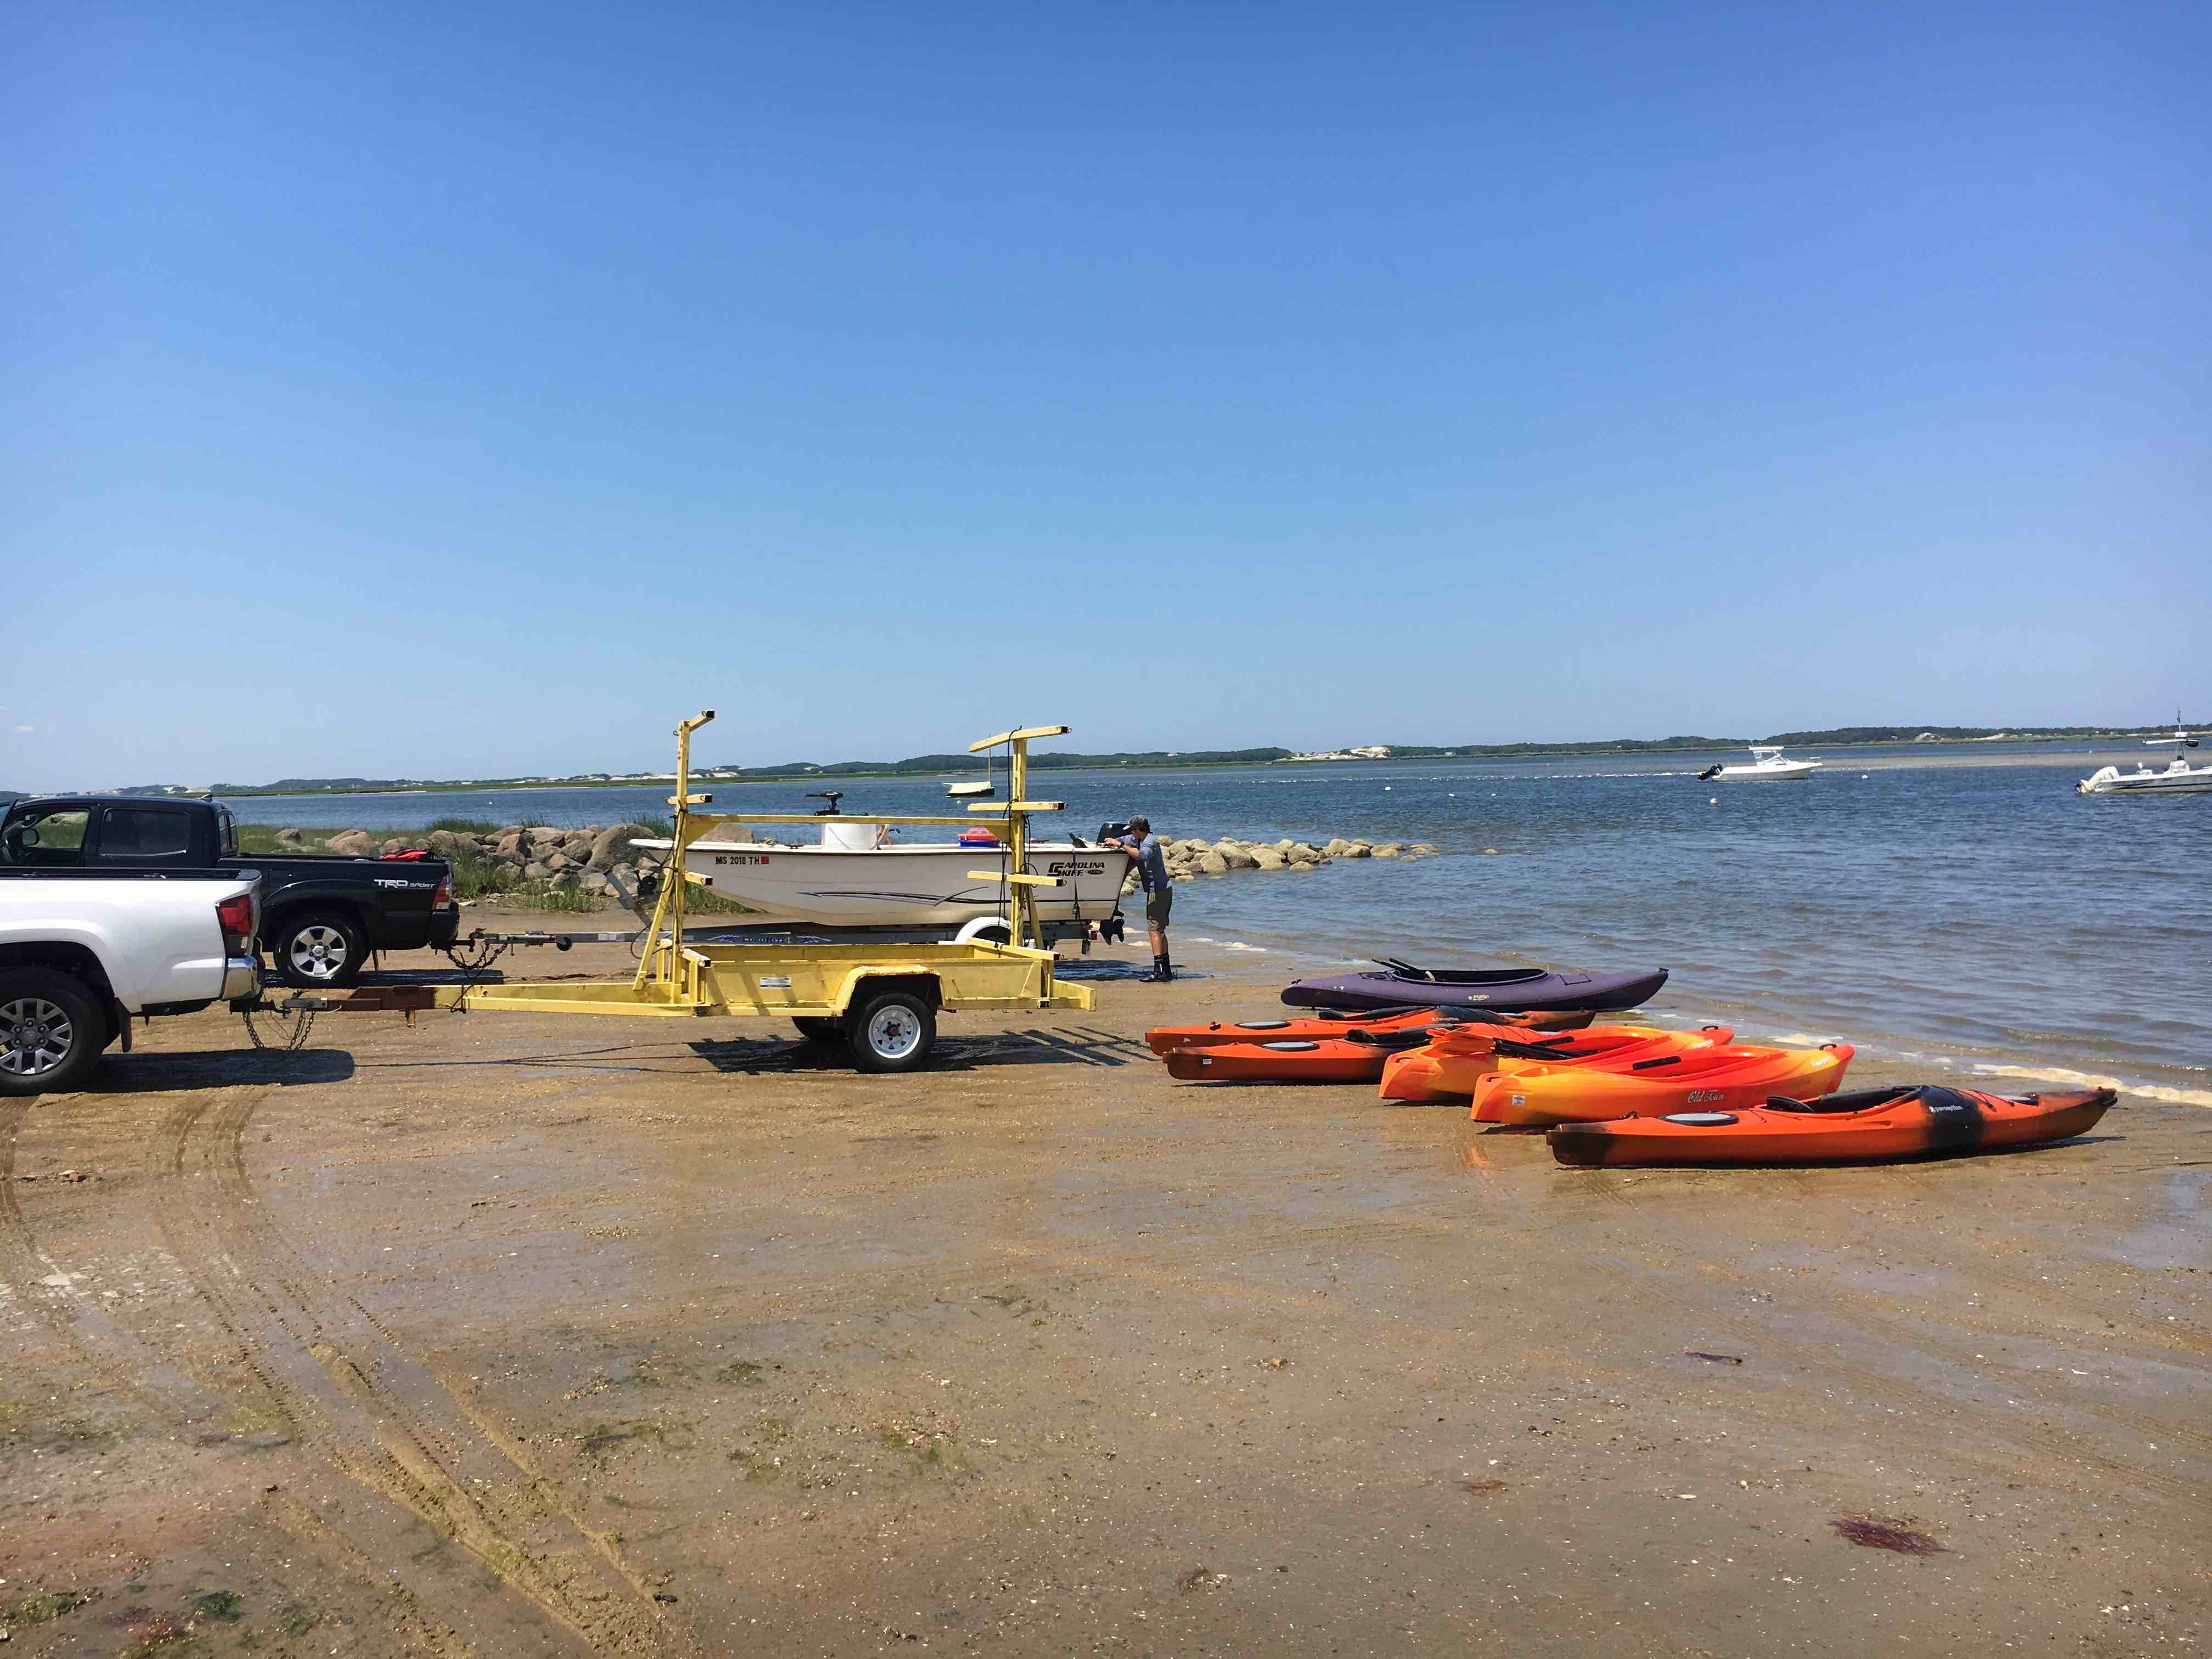 Unloading the kayaks for a tour